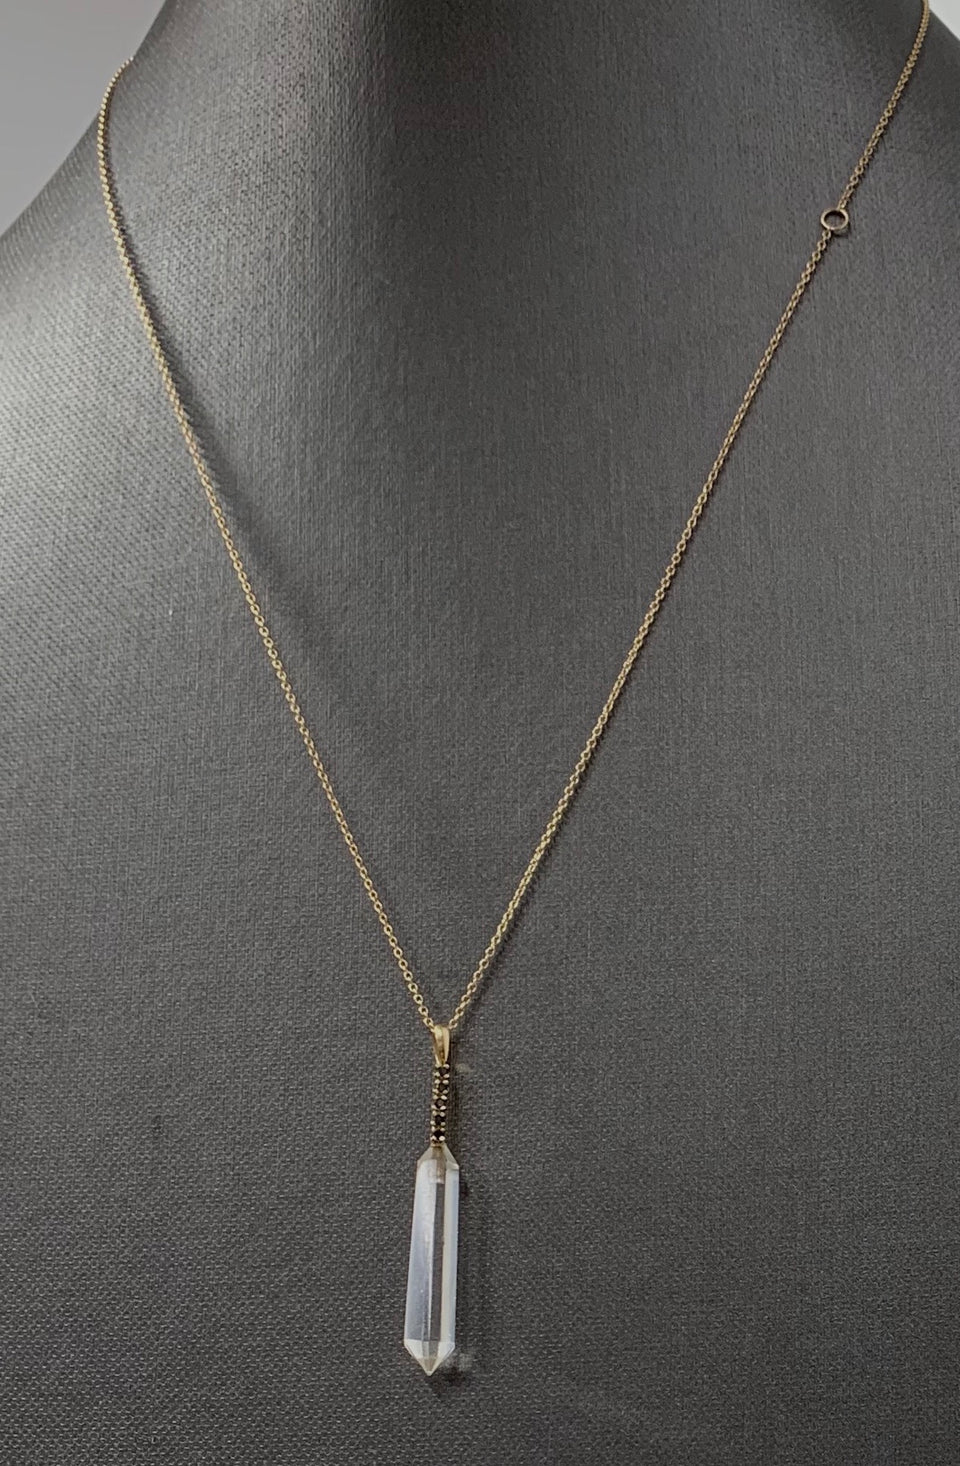 5 point Black Diamond & Quartz Necklace